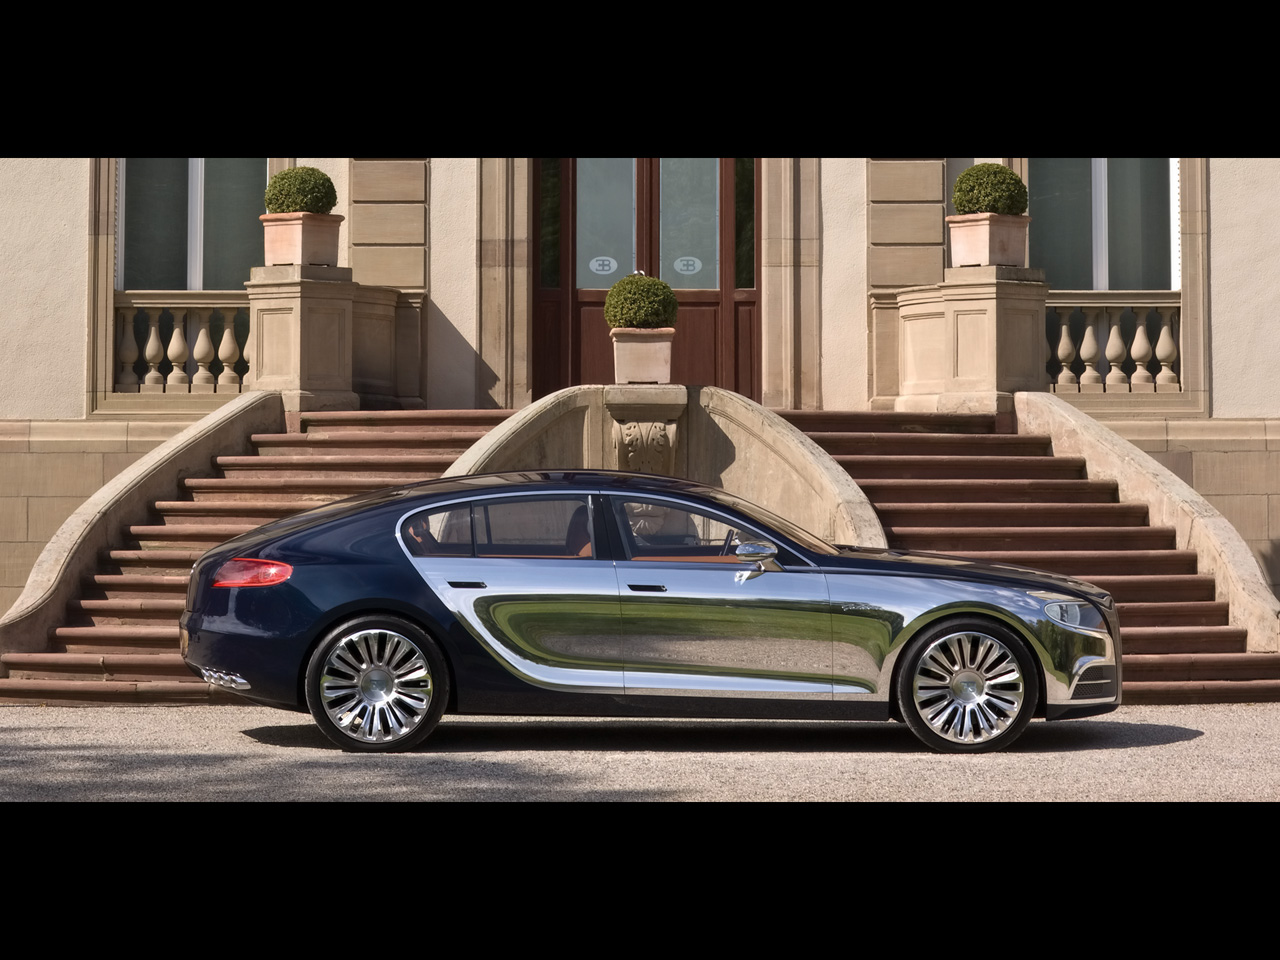 Bugatti Galibier Wallpaper   Photo#20